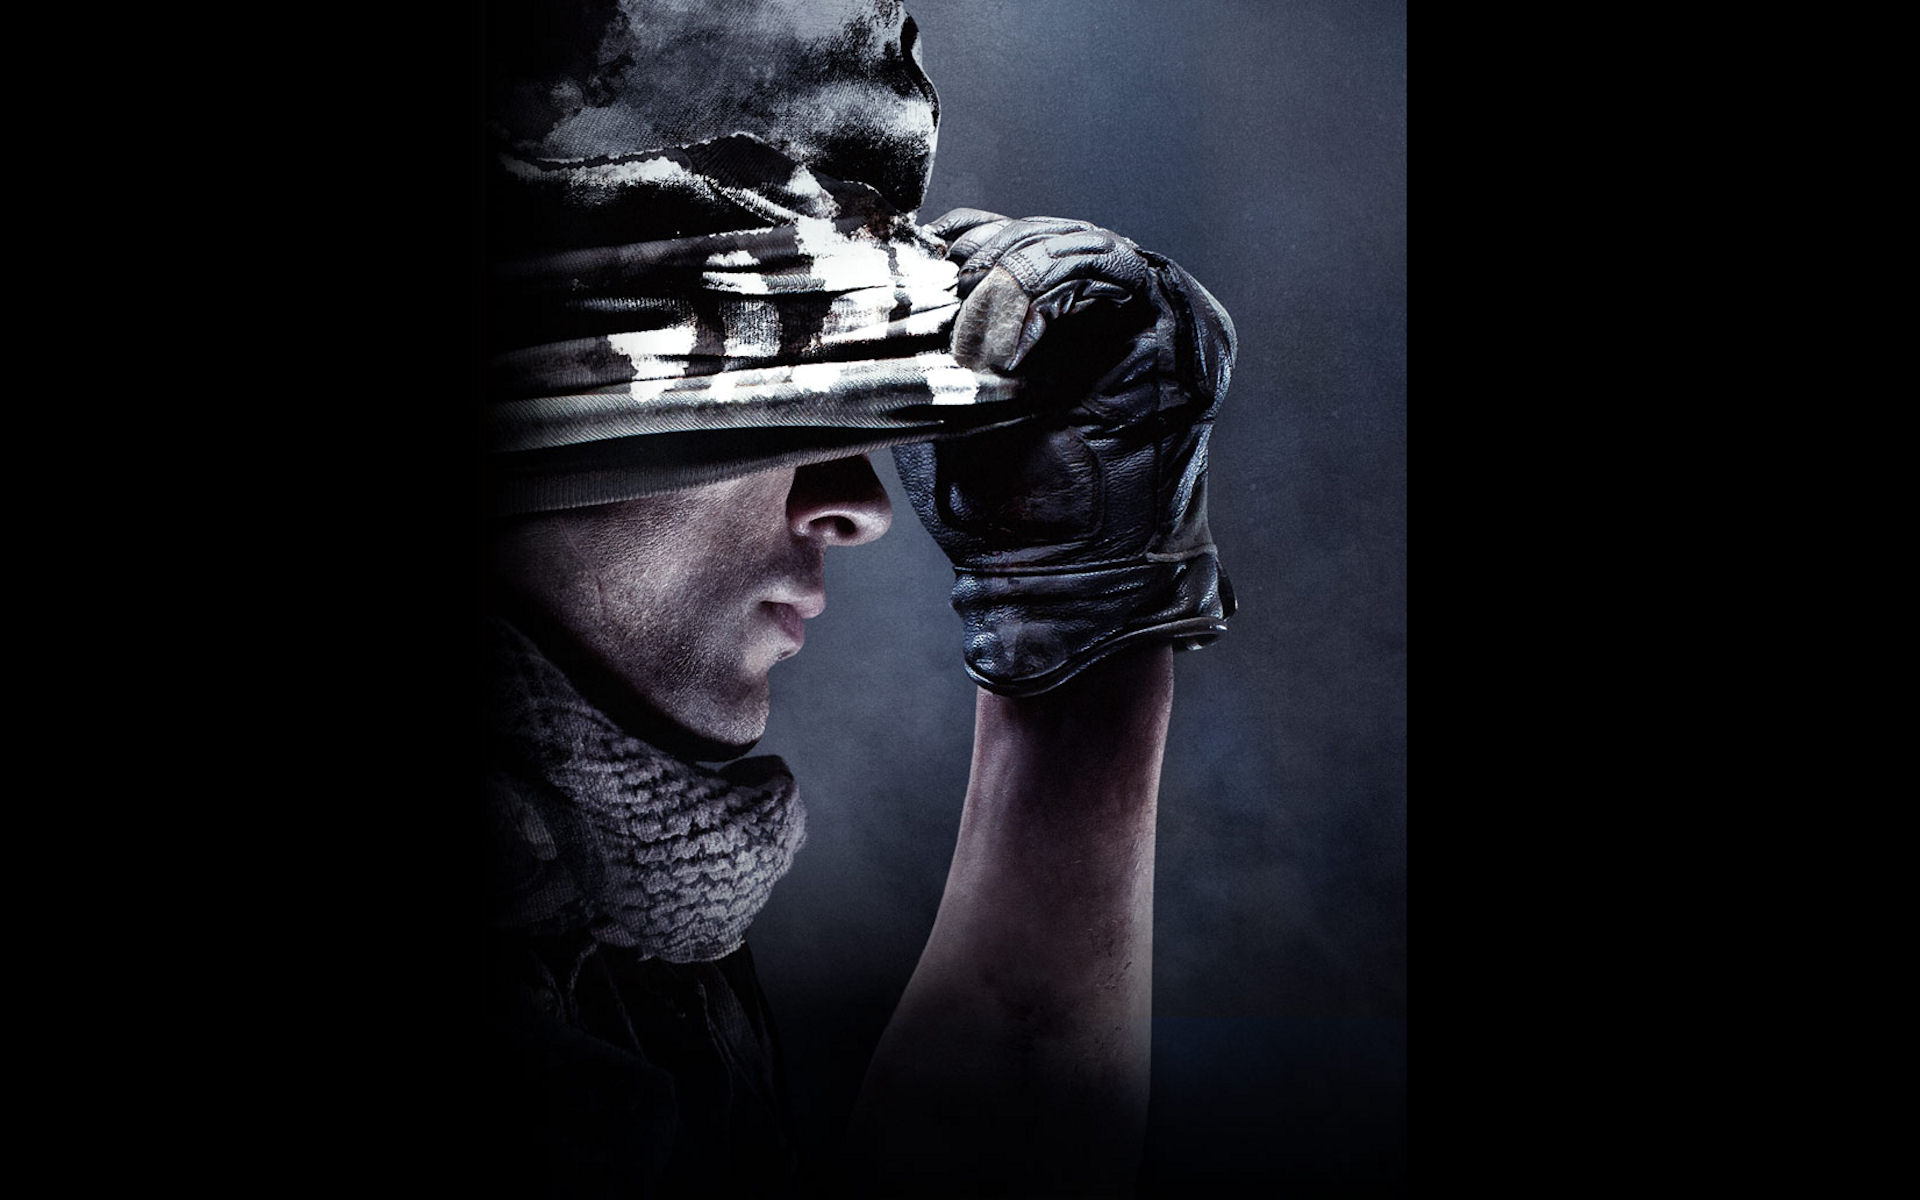 of Duty Ghosts Mask Wallpaper